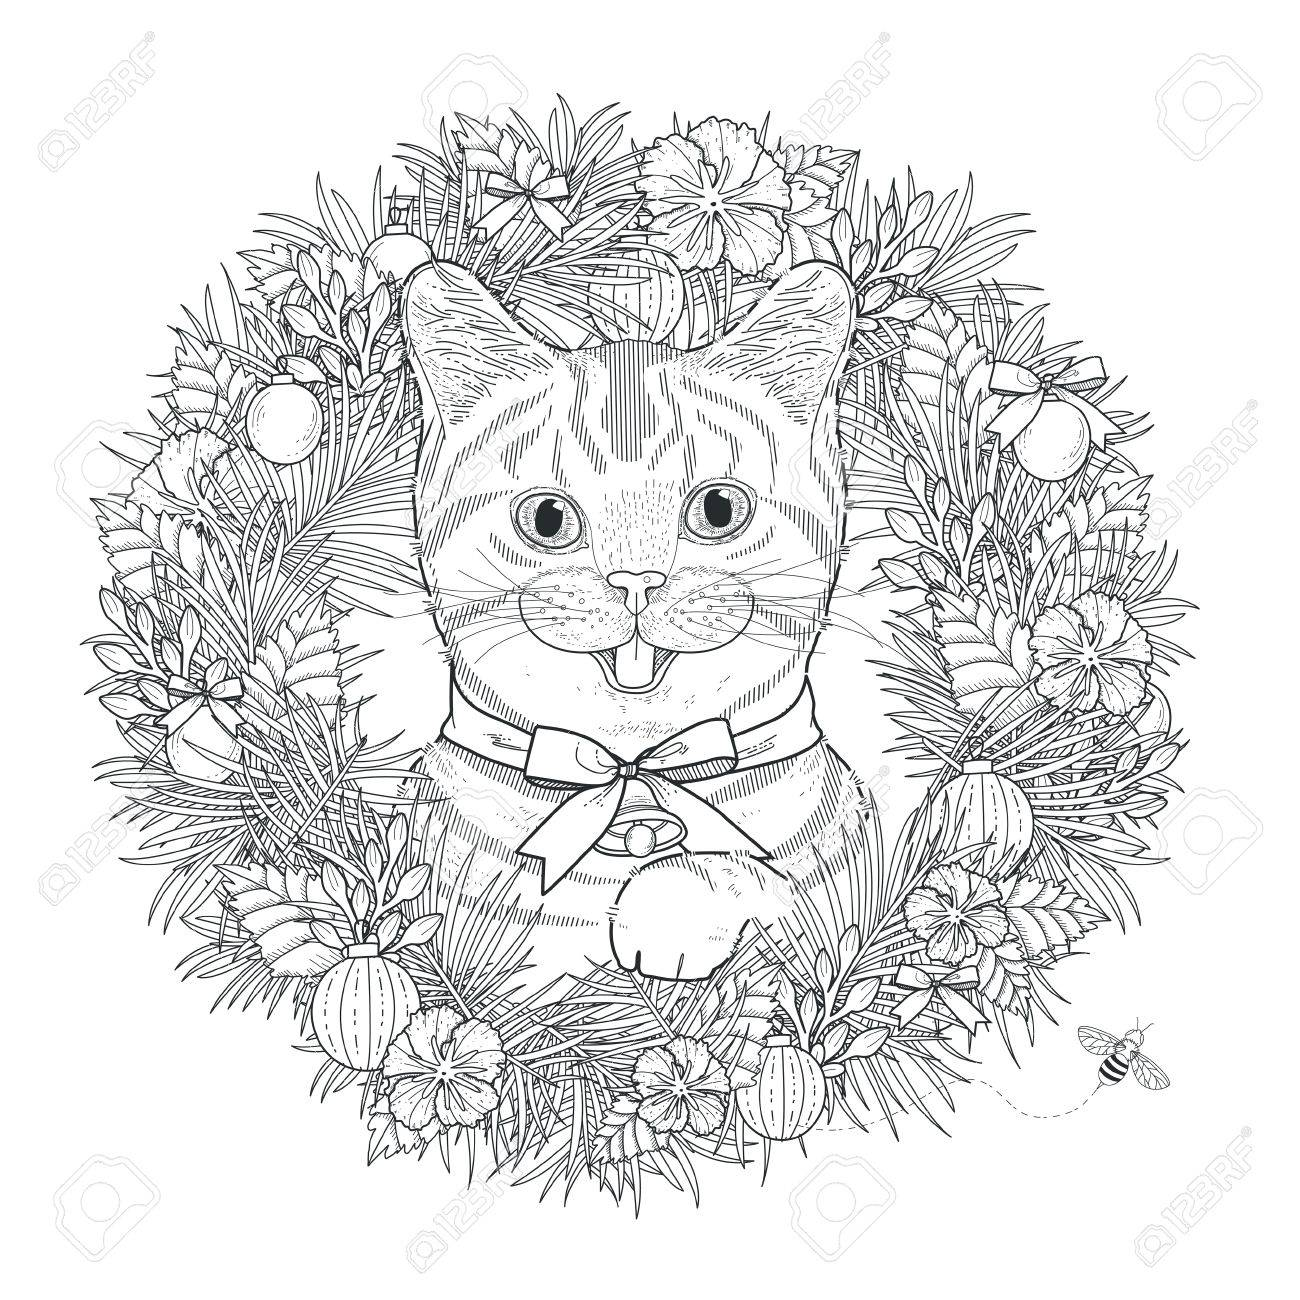 Adorable Kitty Coloring Page In Exquisite Style Stock Vector